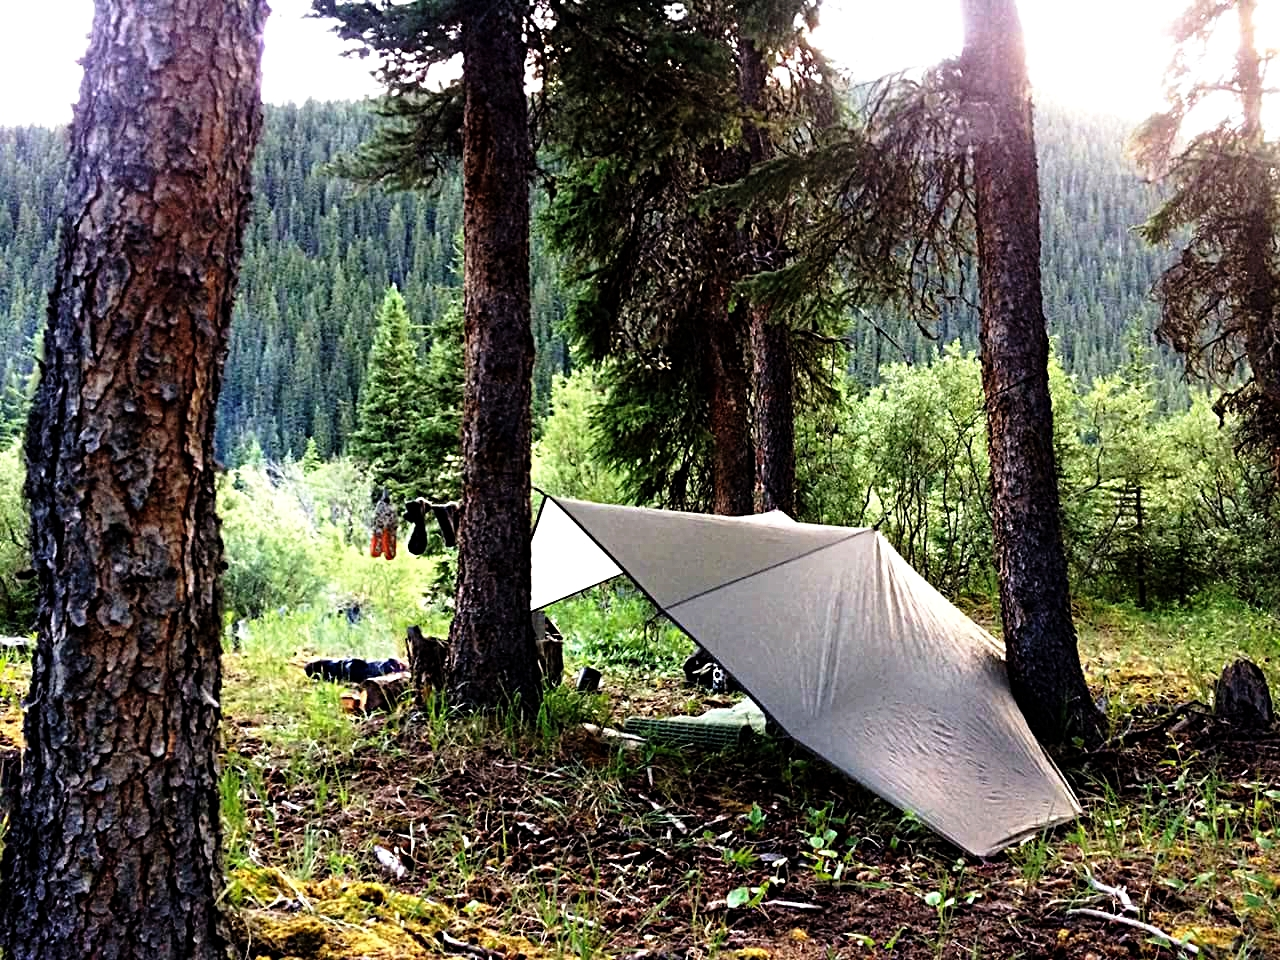 A few mature trees offer anchor points to pitch a back country tarp shelter and drying line. Open air and starry skies are to be expected.